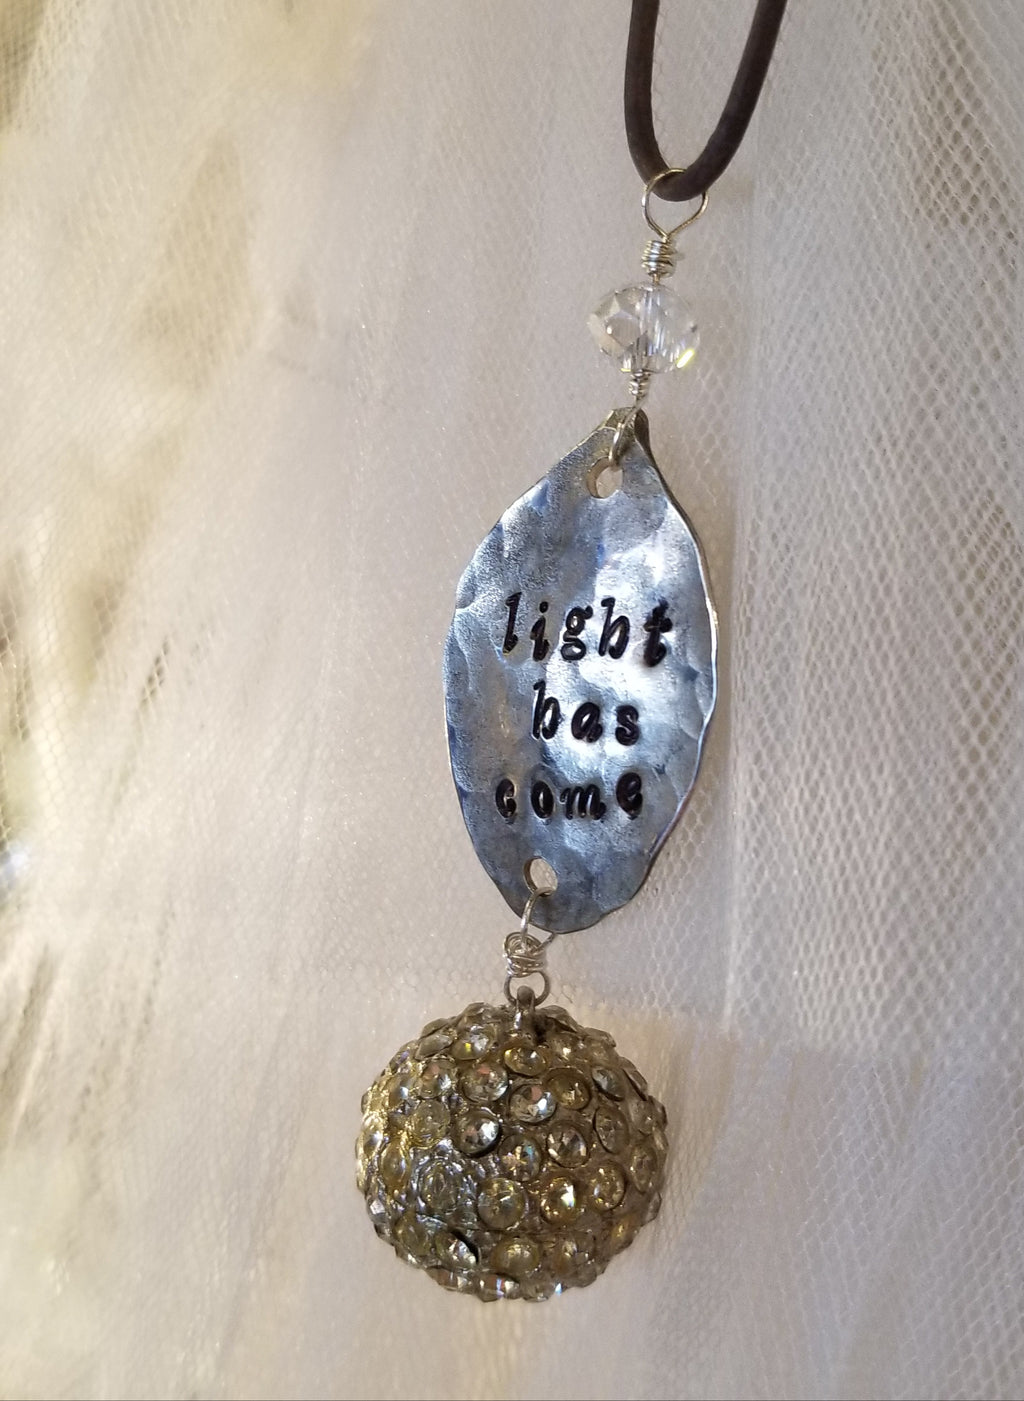 Hand Stamped Vintage Silverware Necklace - Light has come